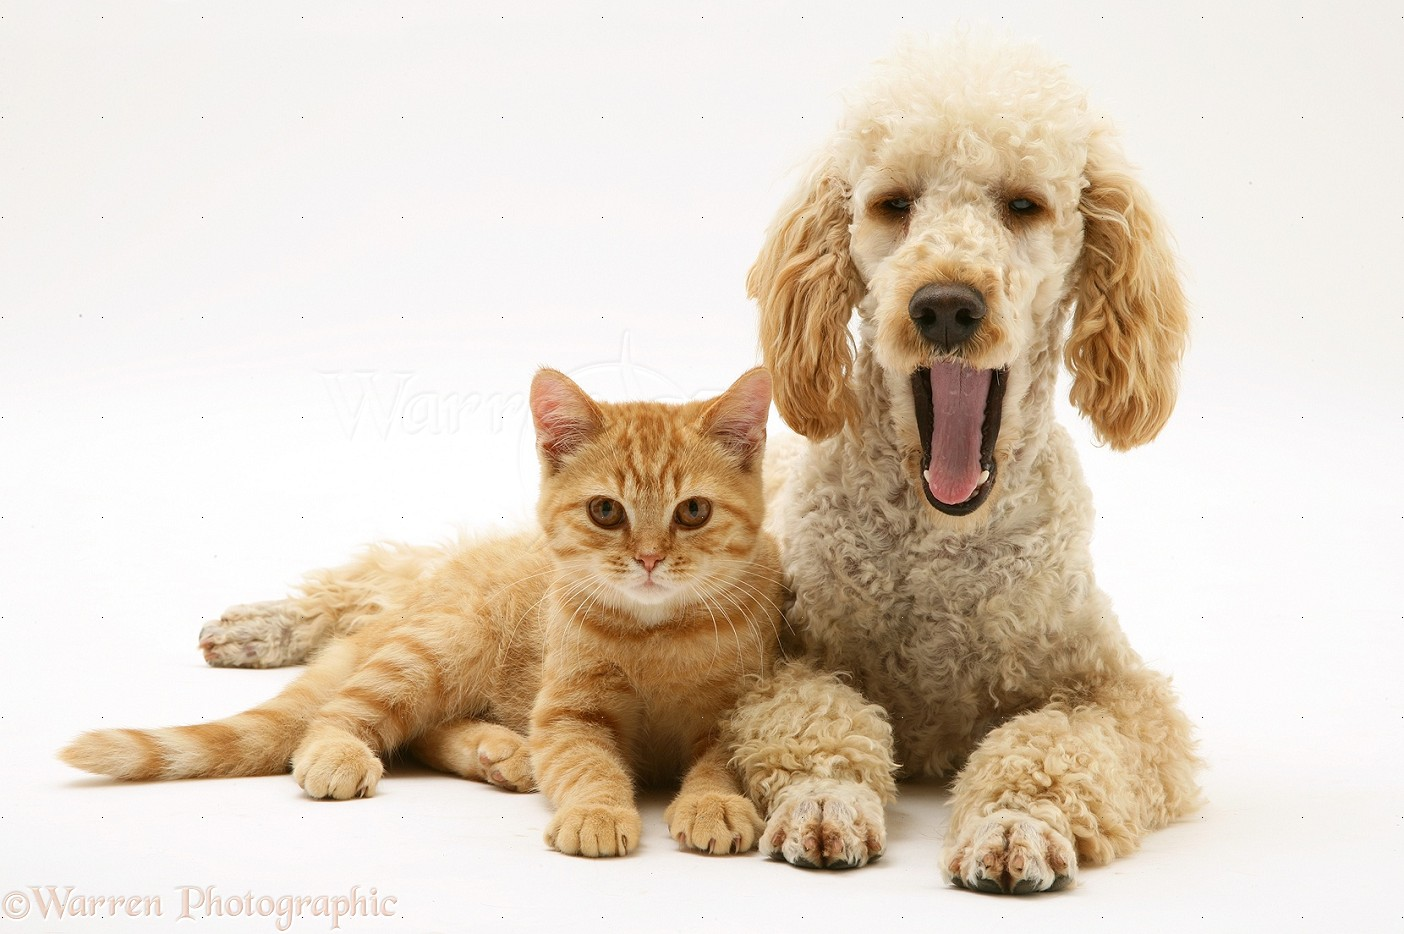 Wp24726 apricot poodle murphy with ginger cat